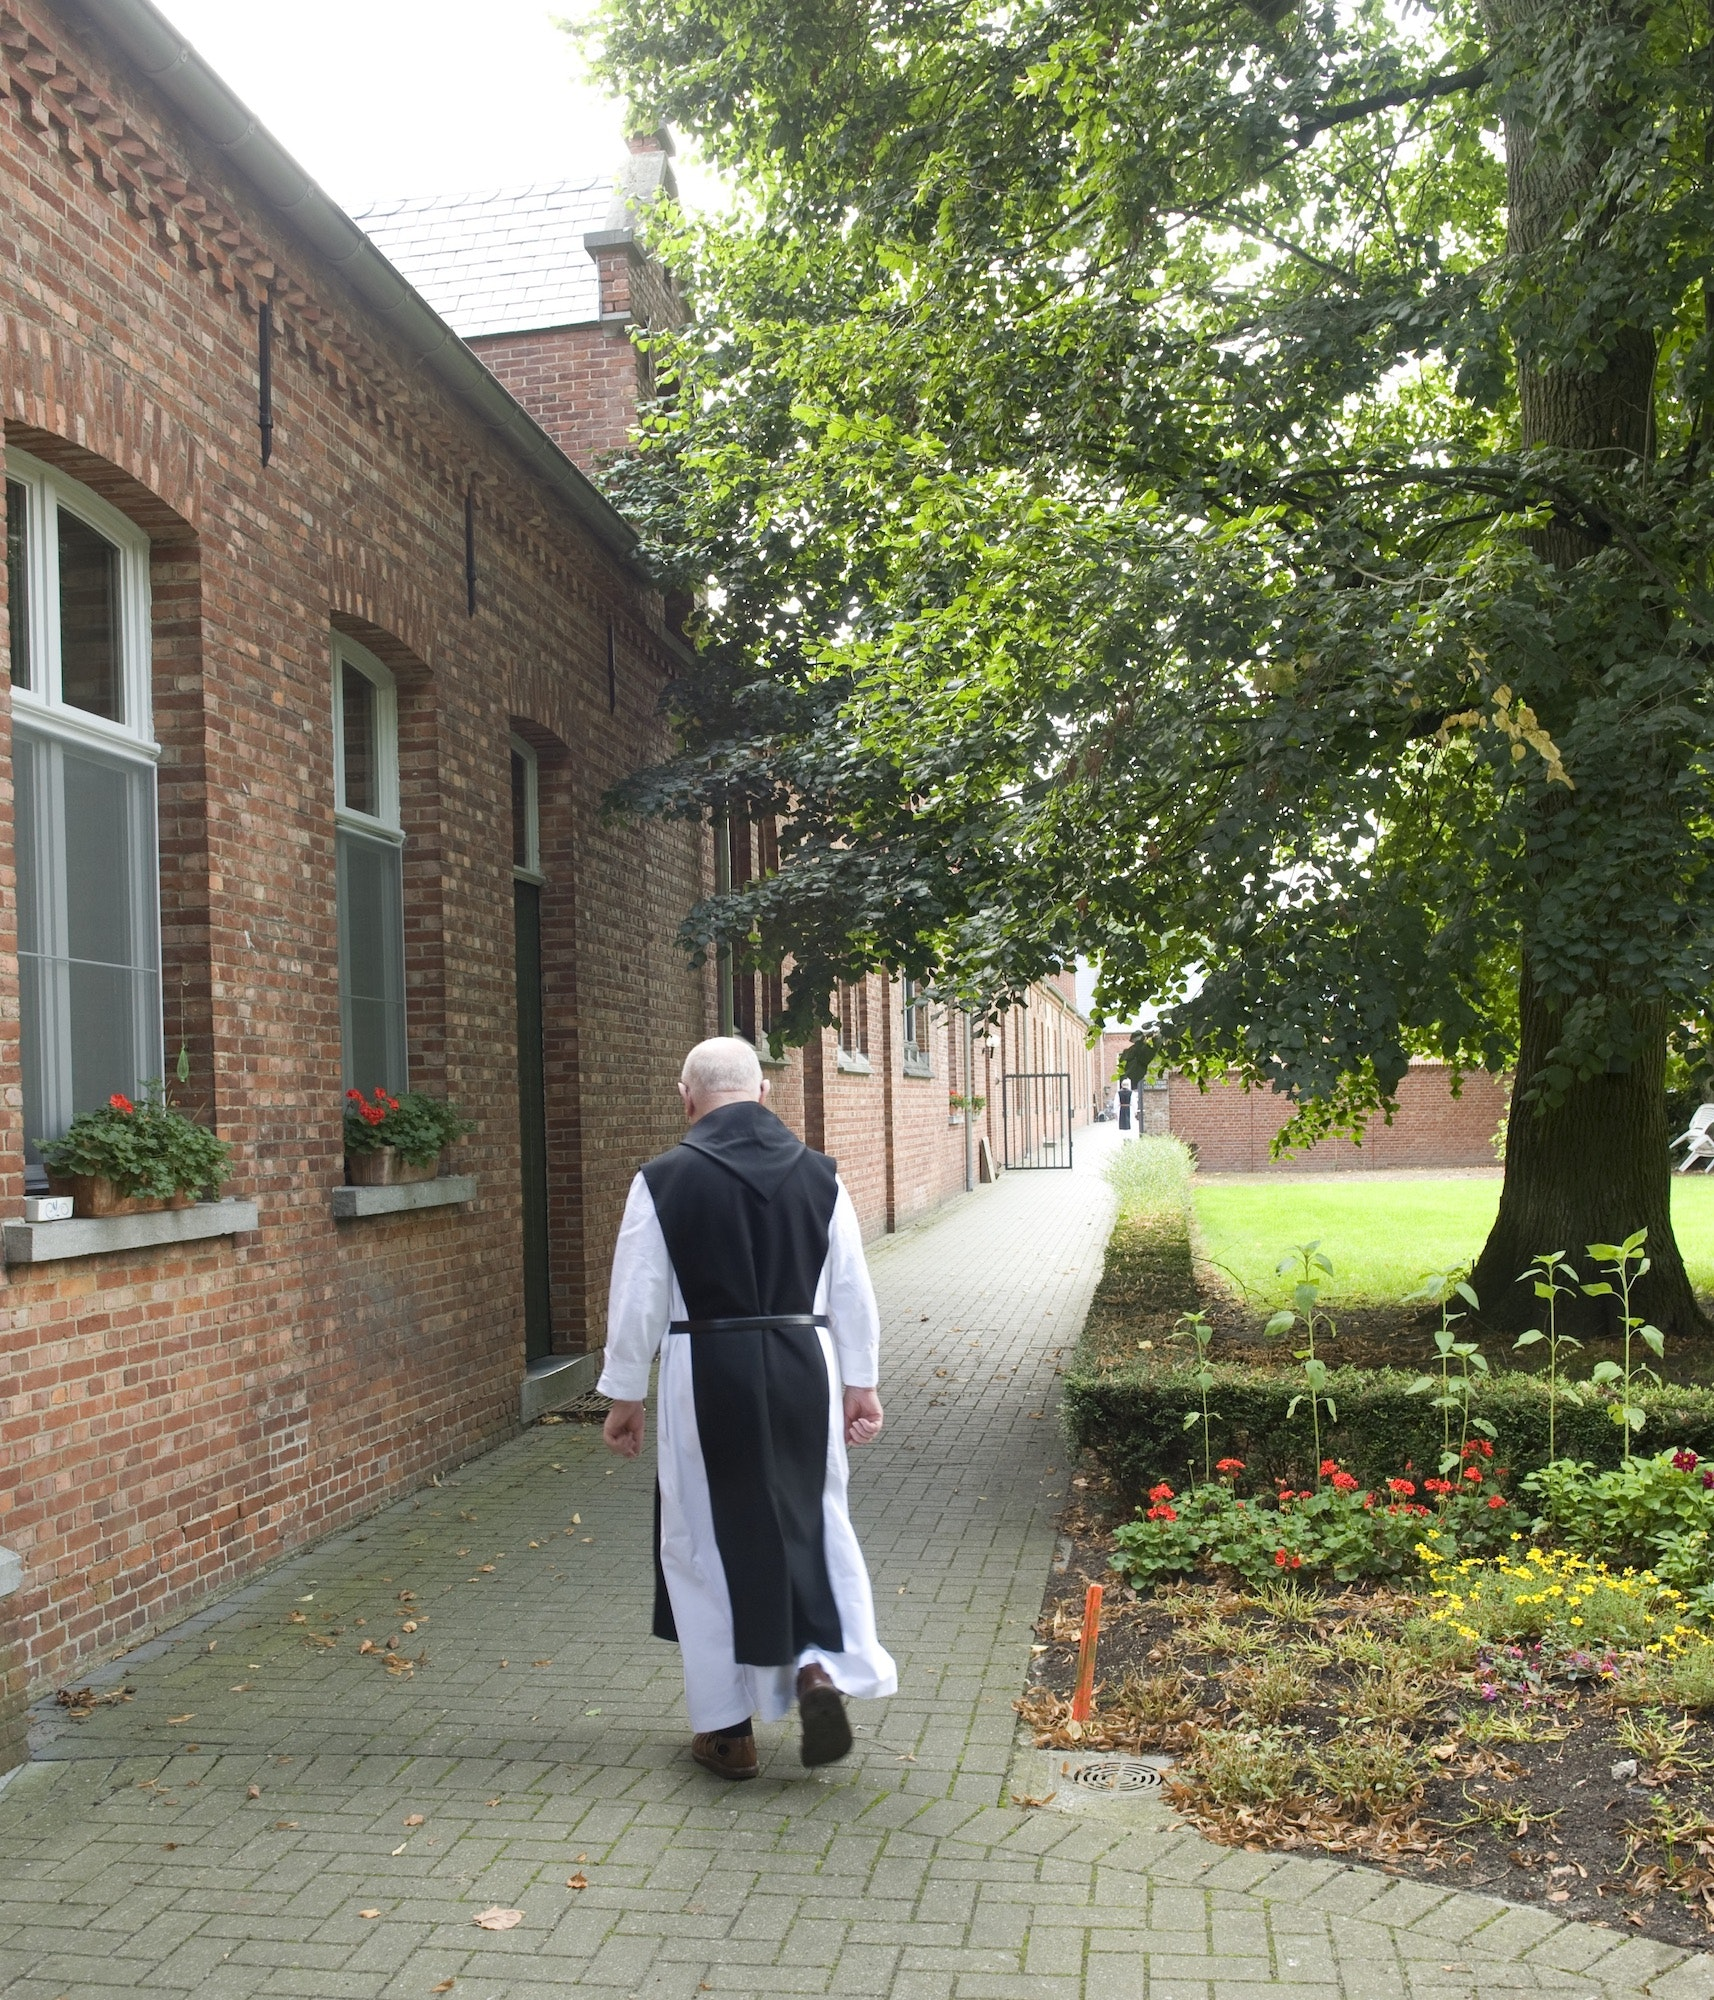 Trappist monks at Westmalle make beer as part of the life of prayer and work prescribed by Saint Benedict.